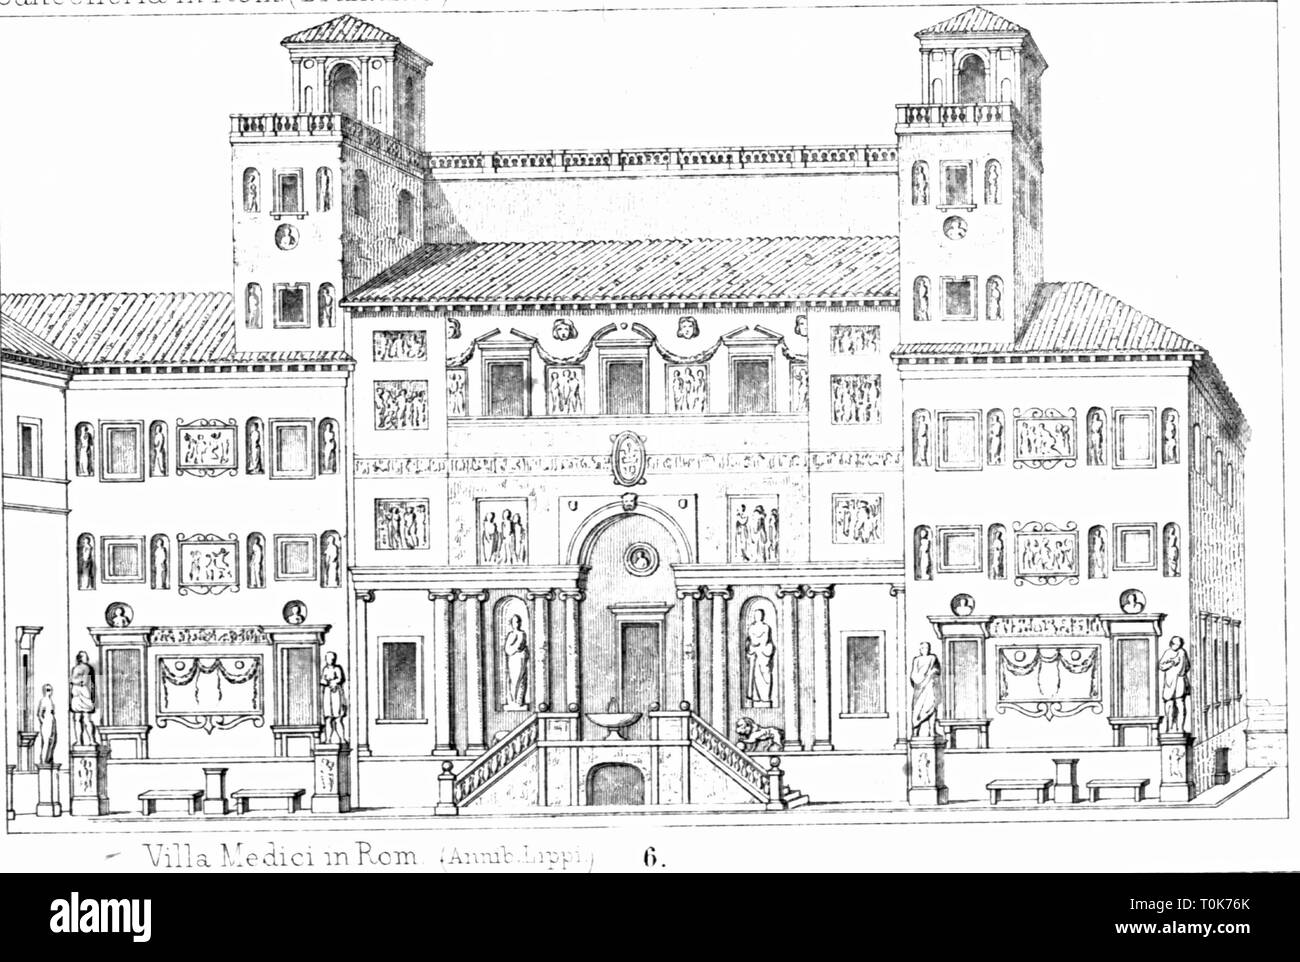 geography / travel, Italy, Rome, buildings, Villa Medici, completed in 1544, exterior view, illustration from 'Denkmaeler der Kunst' (Monuments of Art), by Wilhelm Luebke and Carl von Luetzow, 3rd edition, Stuttgart 1879, volume 2, steel engraving by H. Gugeler, after drawing by Wilhelm Riefstahl, chapter on architecture, plate XLVI, Renaissance, Southern Europe, capital, capital city, capitals, capital cities, metropolis, building, 16th century, historic, historical, Denkmaler, Denkmäler, Lubke, Lübke, Additional-Rights-Clearance-Info-Not-Available - Stock Image